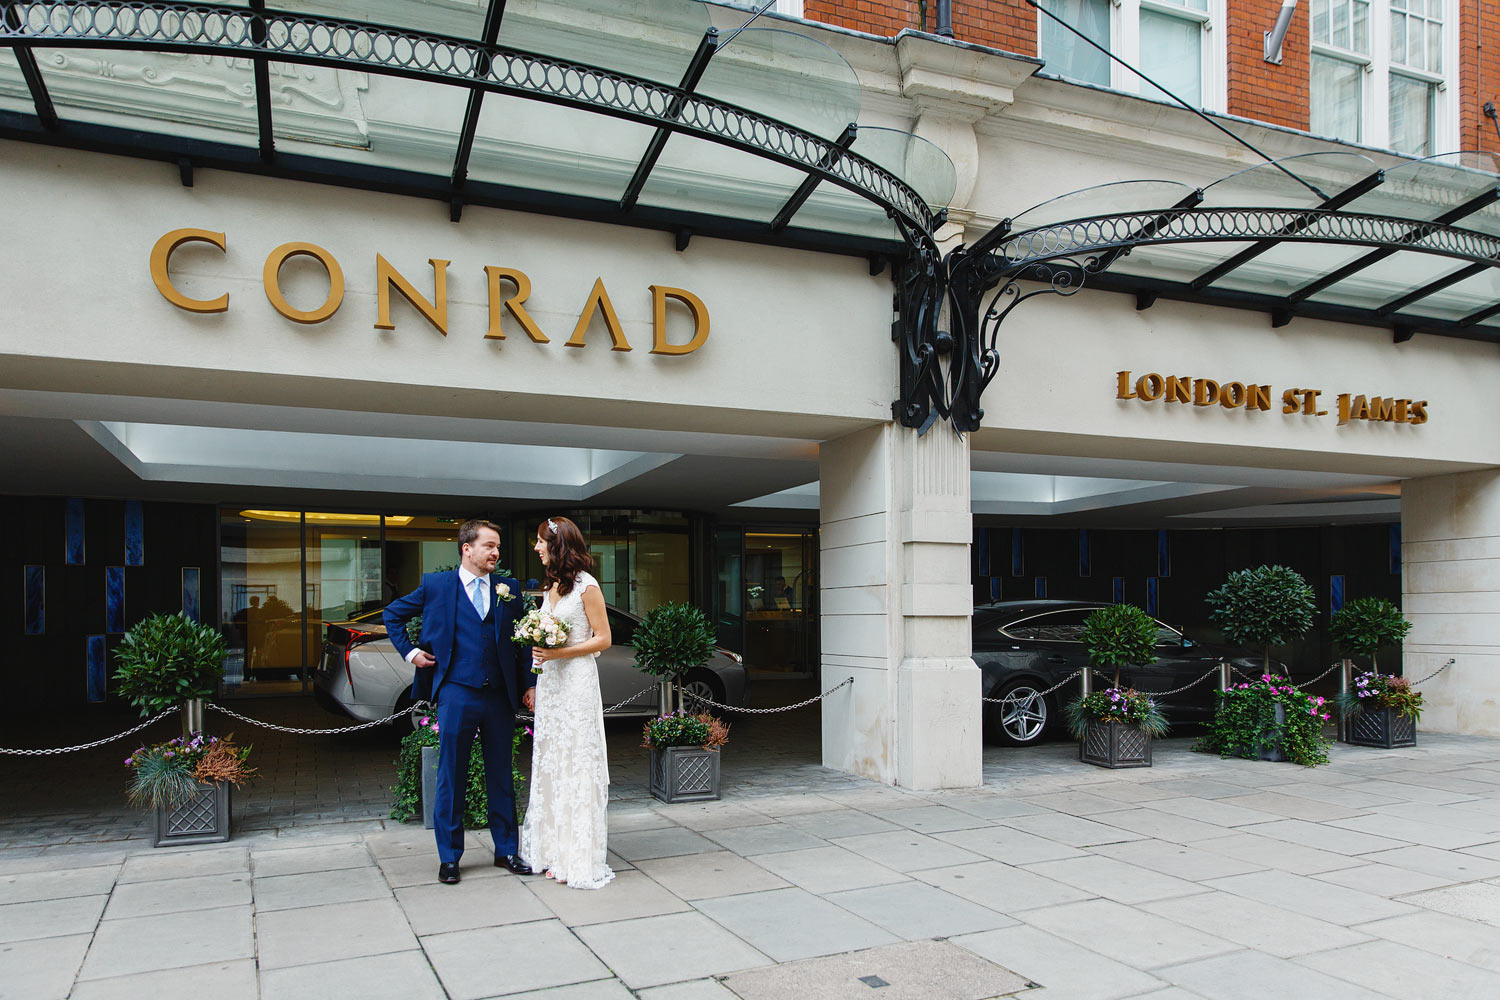 A wedding couple stand outside the Conrad St James Hotel - London wedding photographer